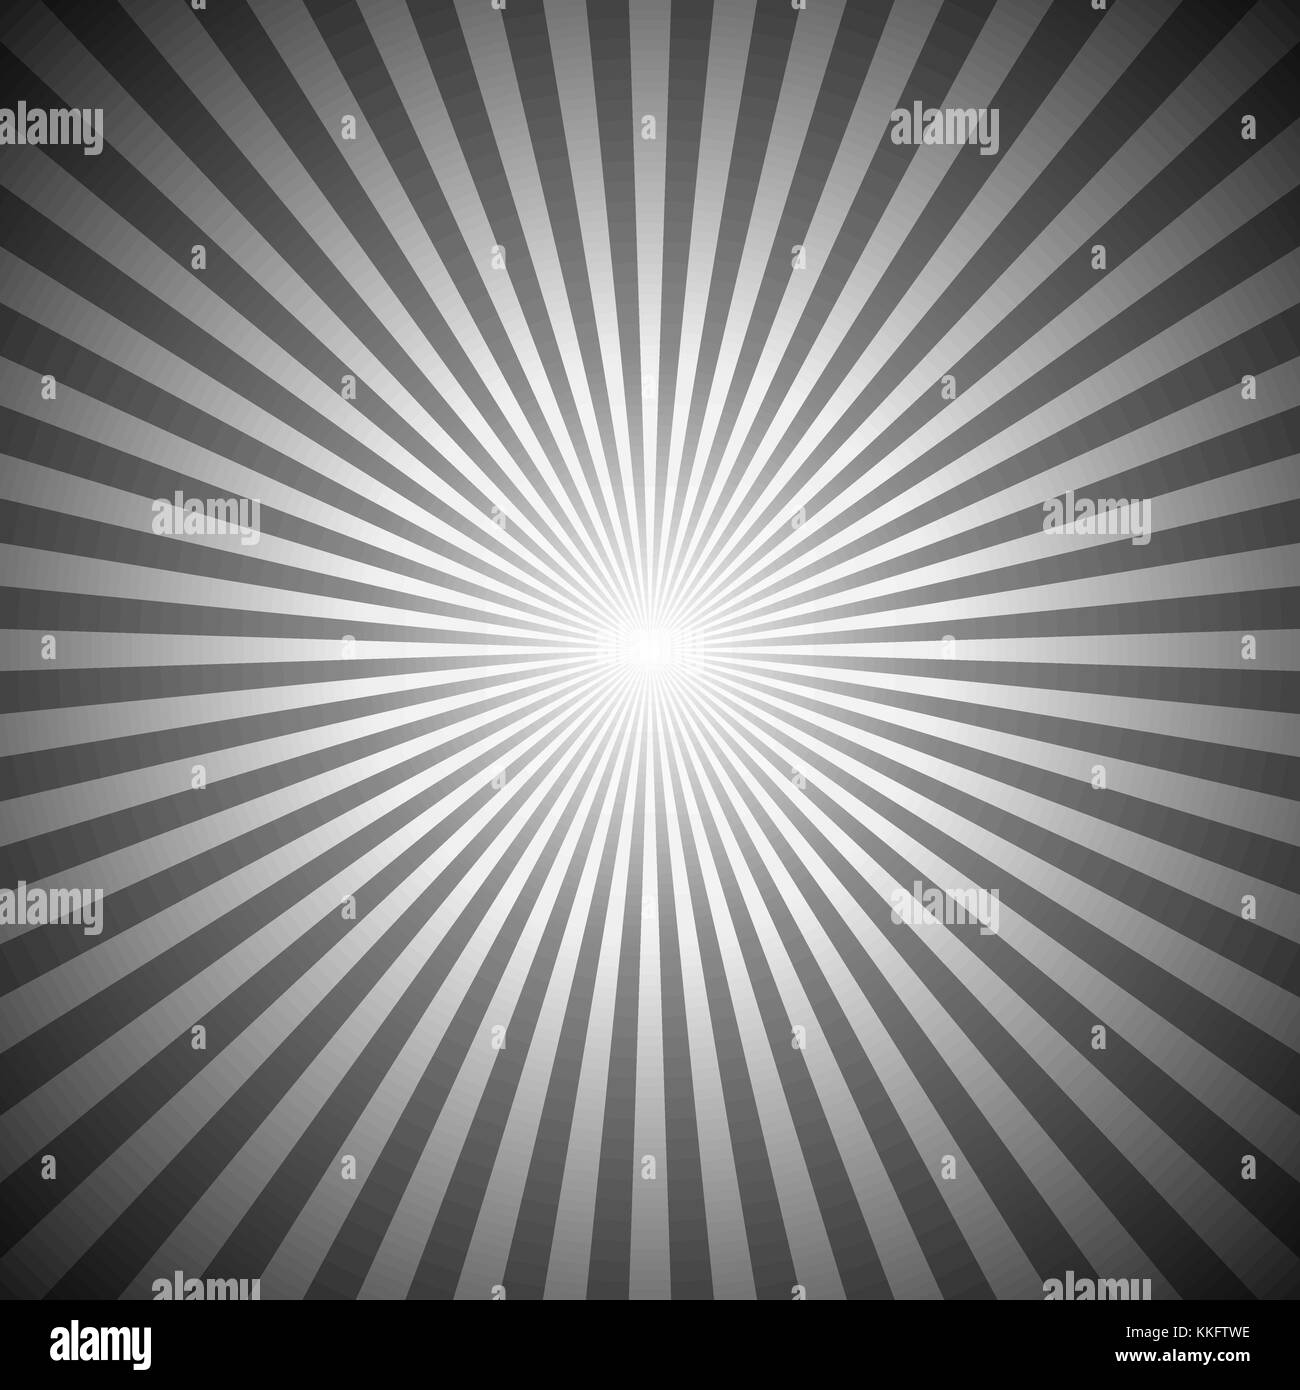 a70849c3fa Geometrical abstract sun burst background - gradient vector graphic from  radial stripes